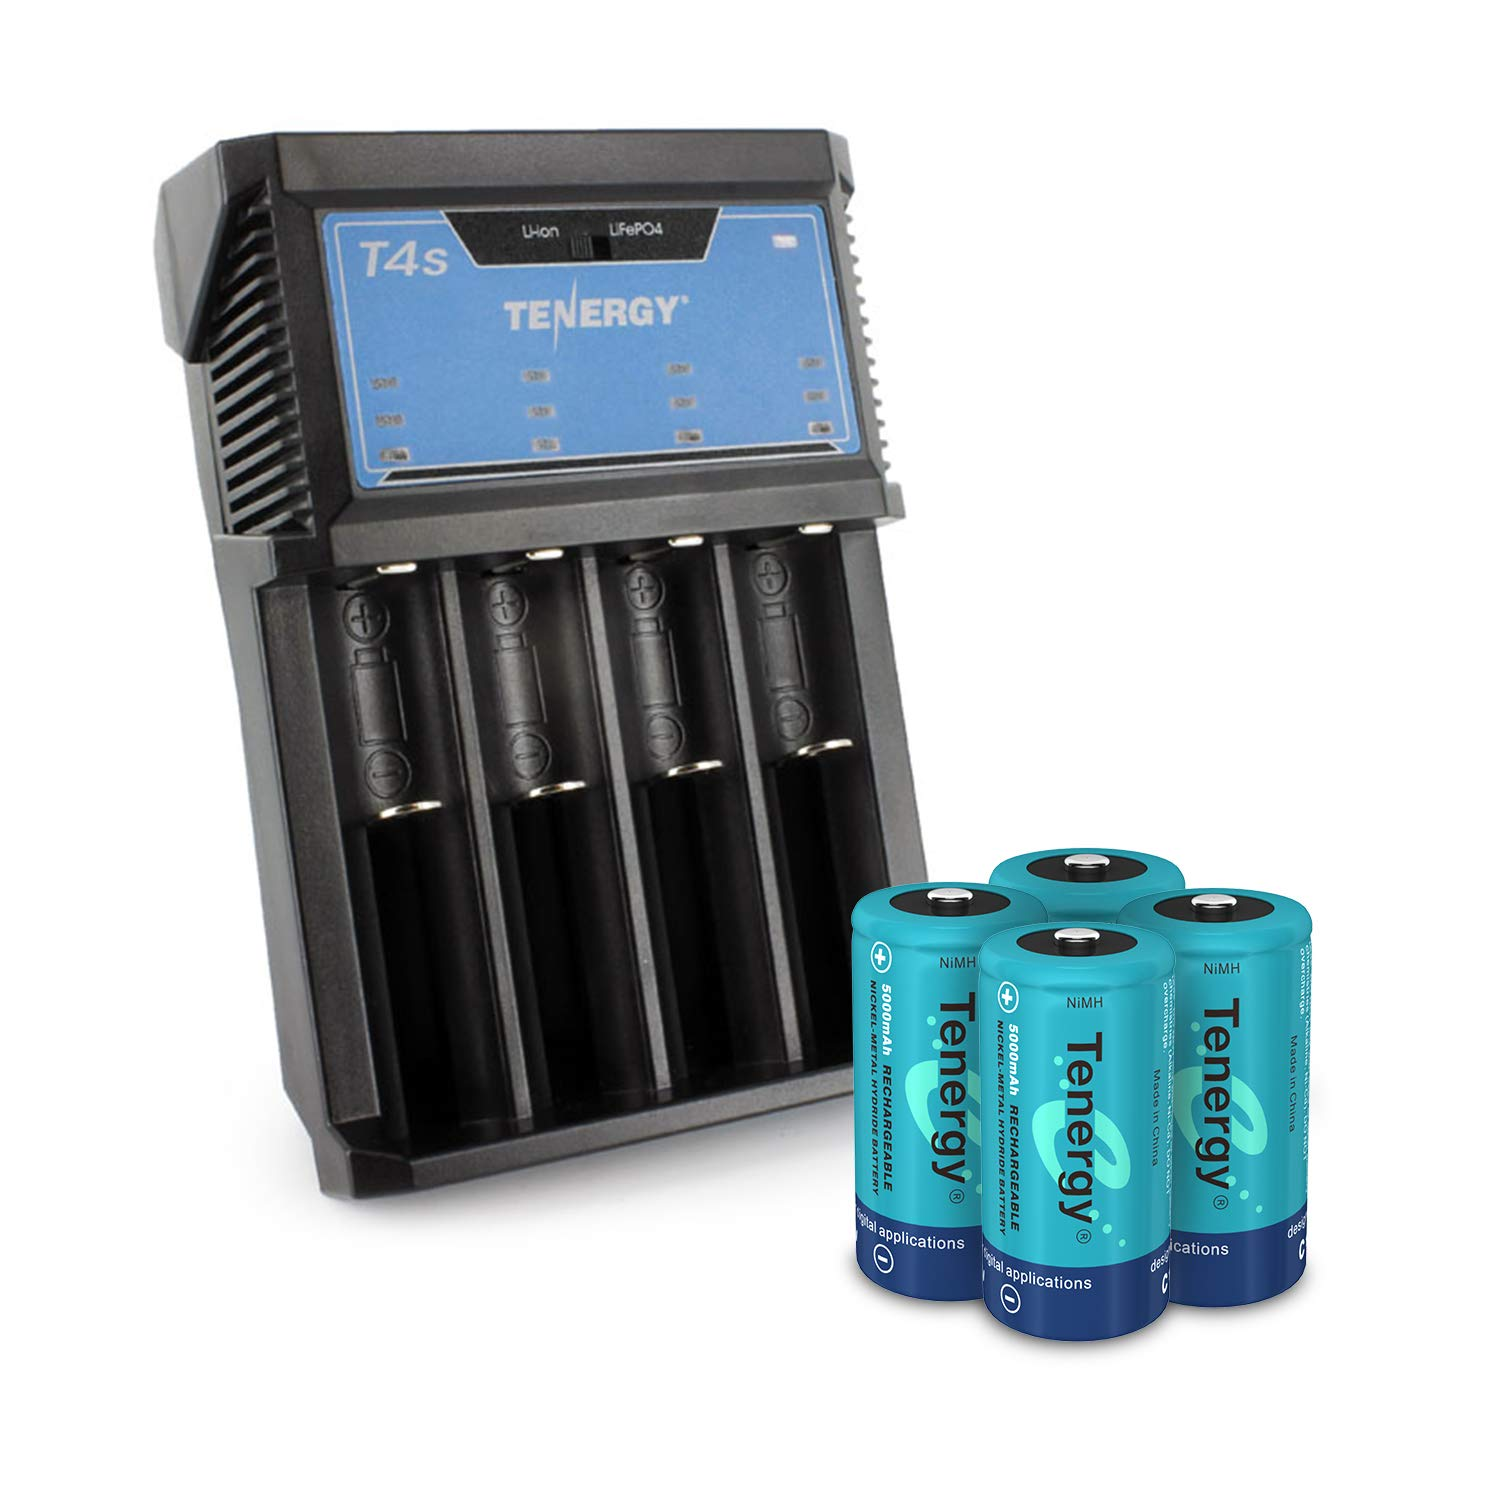 Tenergy Rechargeable NiMH C Batteries and T4s Battery Charger for Li-ion/NiMH/NiCd AA/AAA/C/18650 Batteries, 4 Pack C Size Battery Cells and Charger with Car Adapter